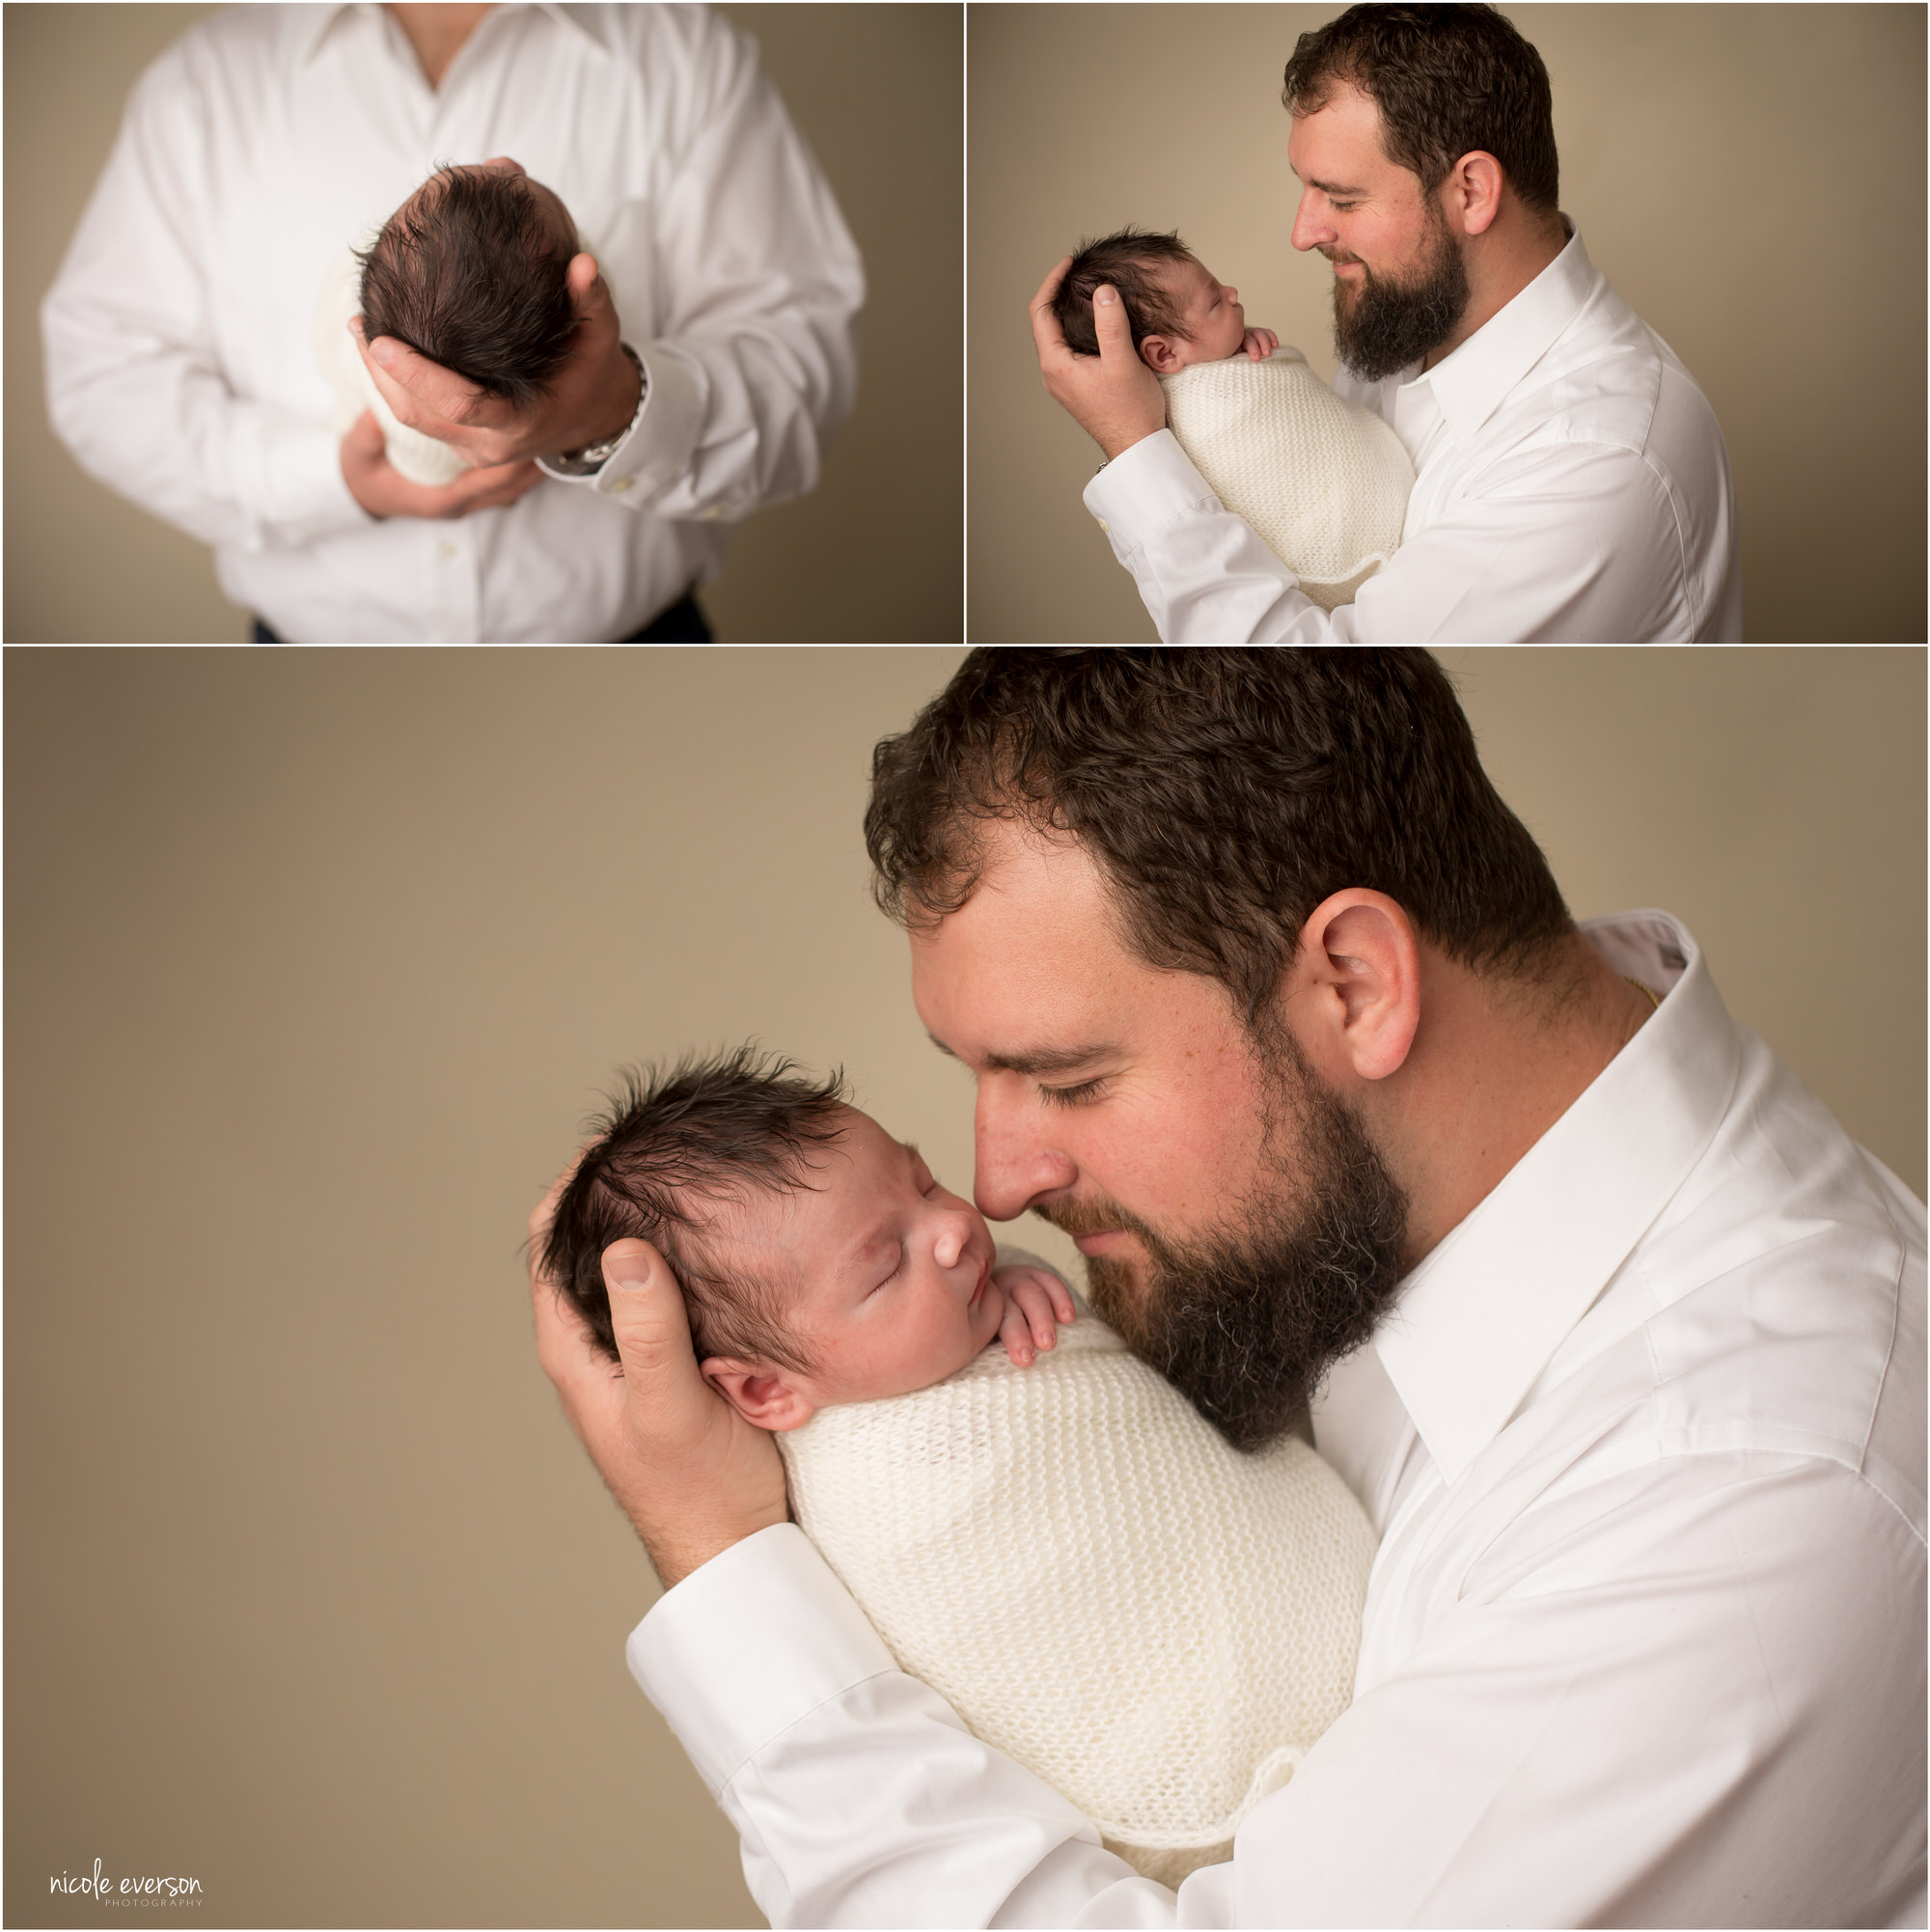 pictures of dad holding baby at Nicole Everson Photography studio